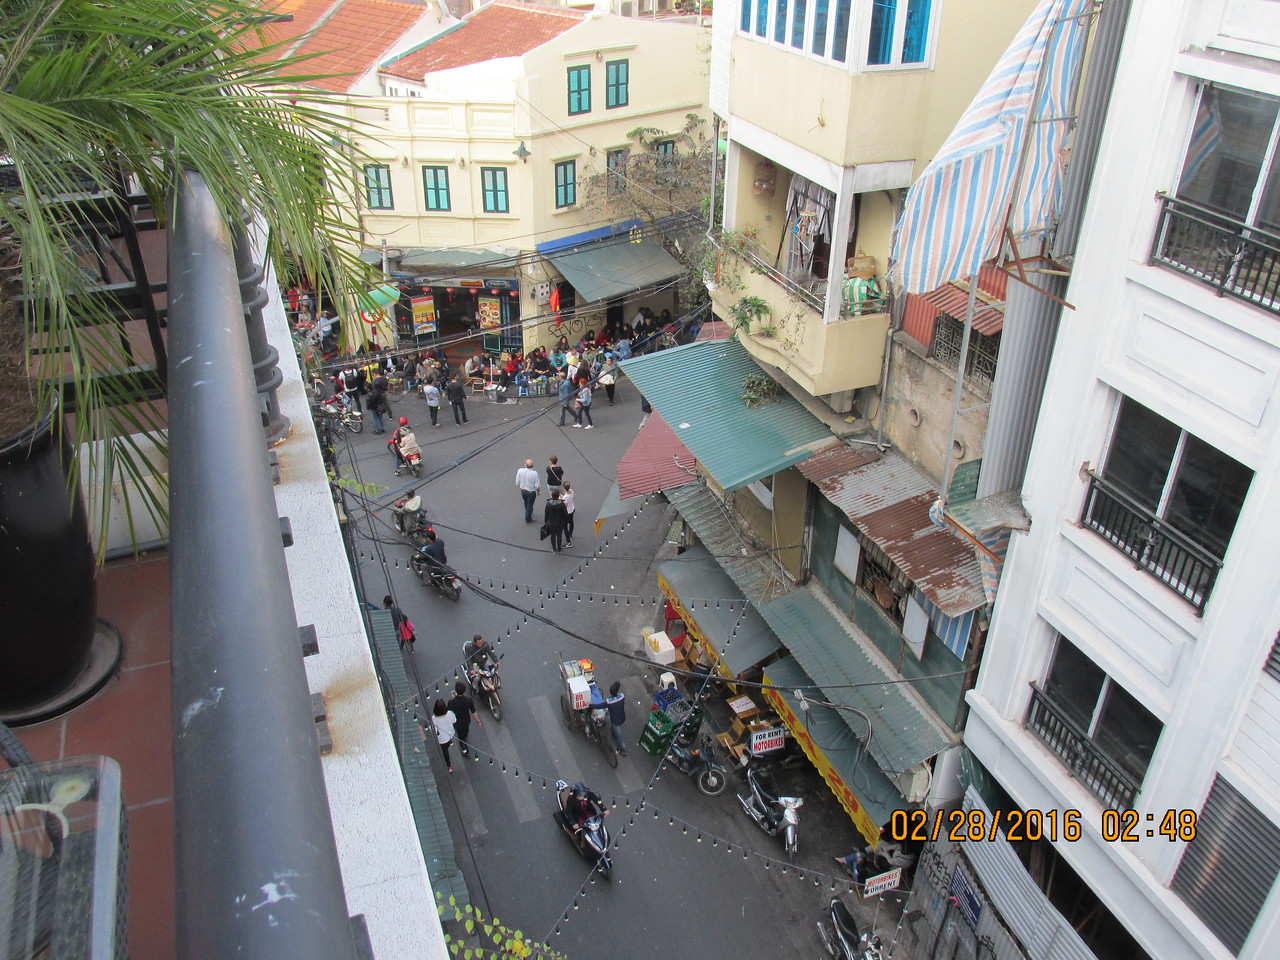 0032 - View from Balcony of Essence d'Orient Hotel overlooking Ta Hiem St in Old Quarter - Hanoi Vietnam - Date Correct but Time on Pic is Wrong